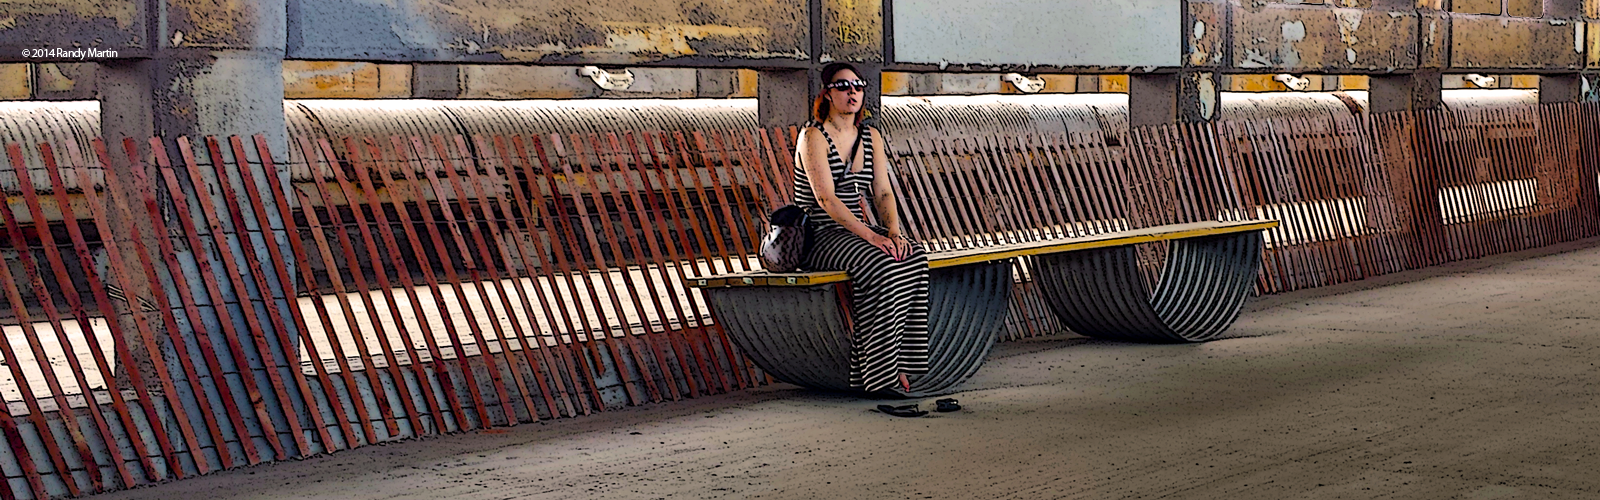 The Lady is The Tiger. Young woman in stripes sitting in front of many stripes.